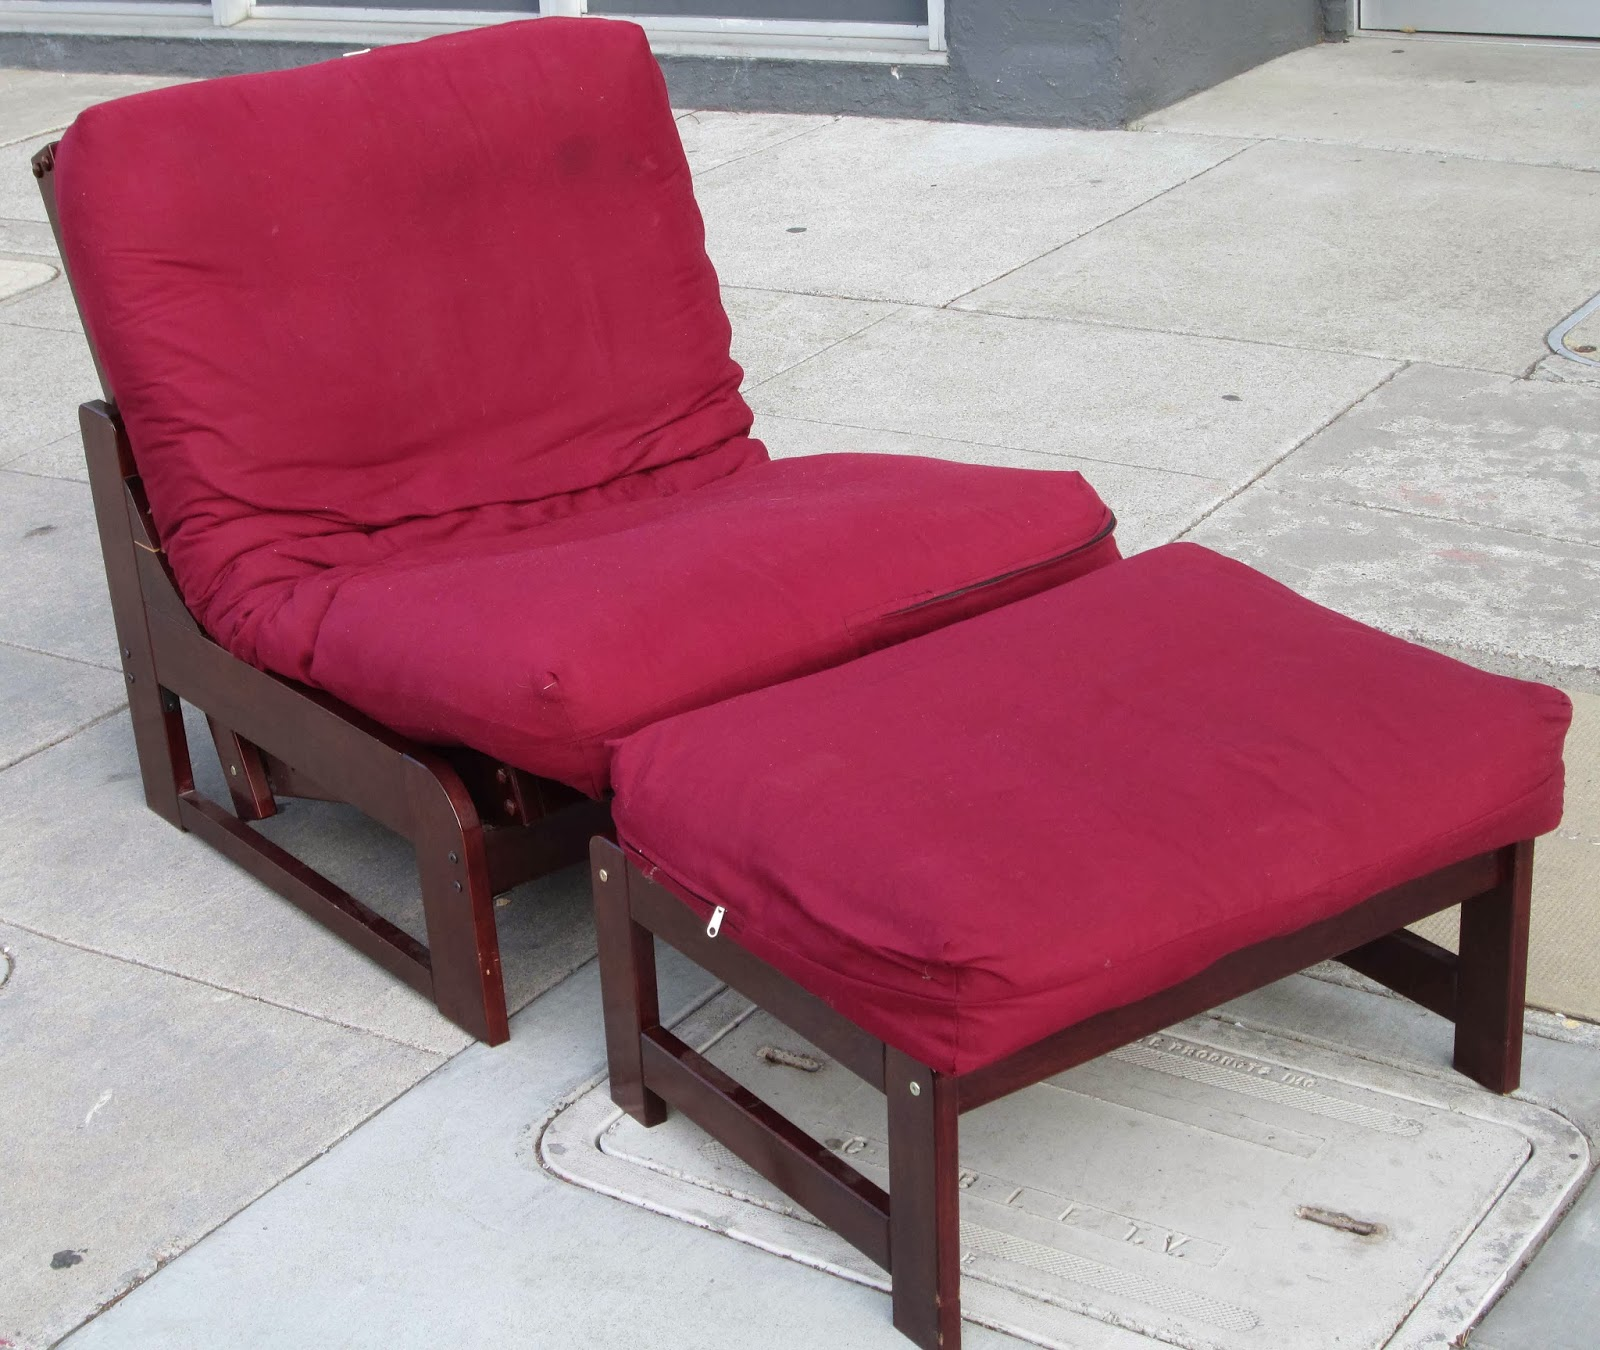 Sold Red Single Futon Chair Ottoman Cushions 70